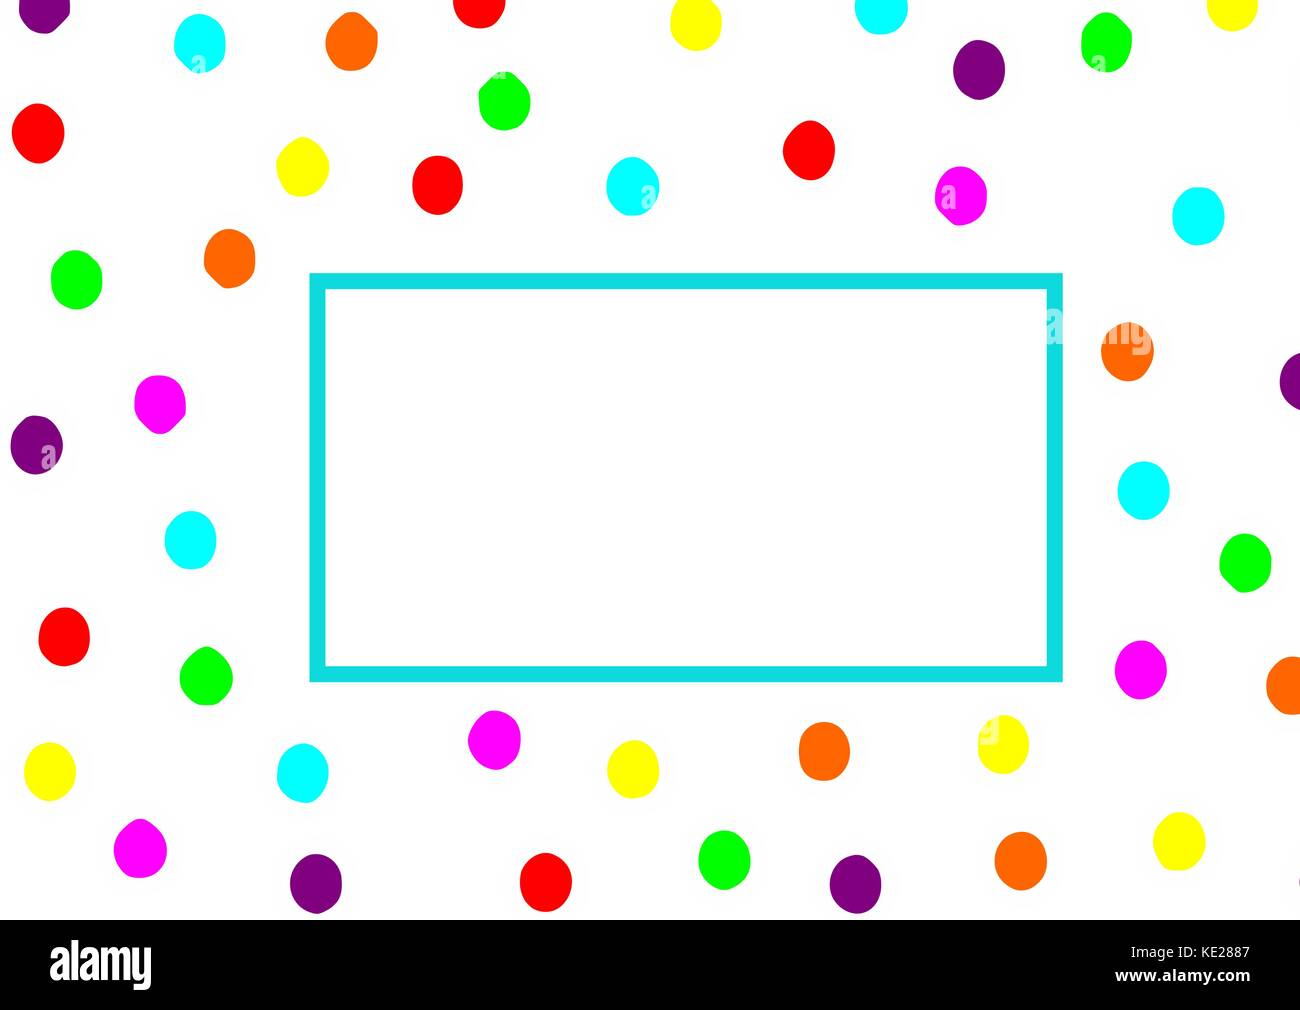 Multi Colour Background Stock Vector Images - Alamy